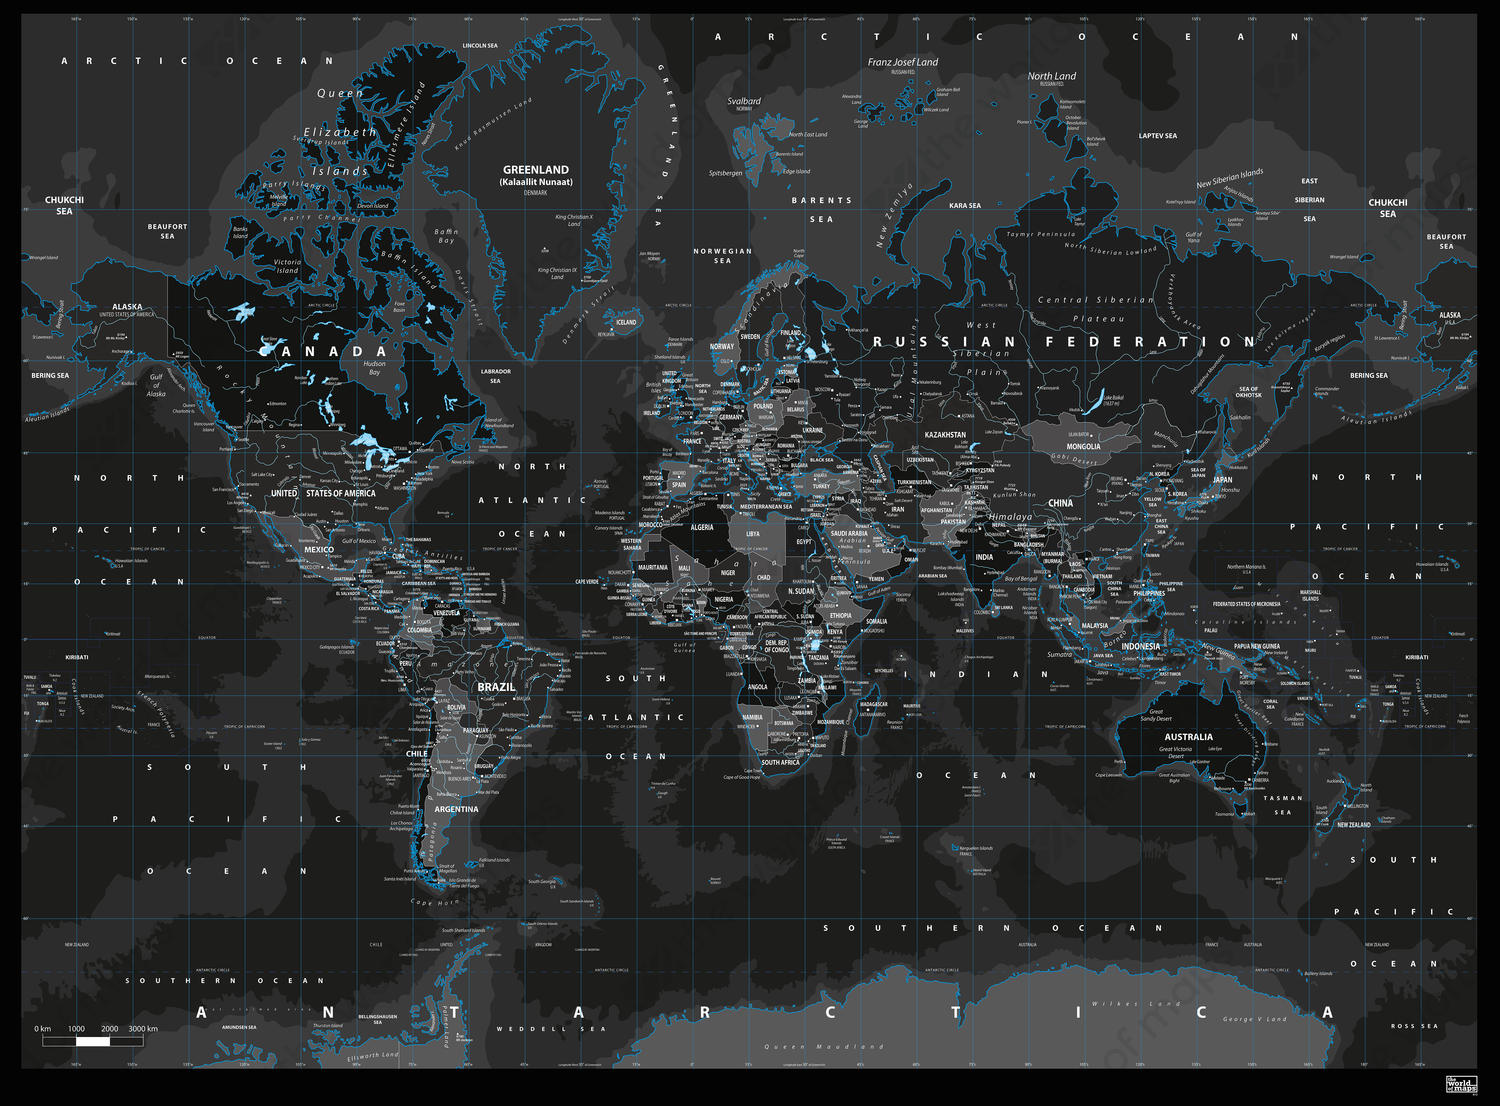 Digital world map black ice 812 the world of maps digital world map black ice gumiabroncs Choice Image